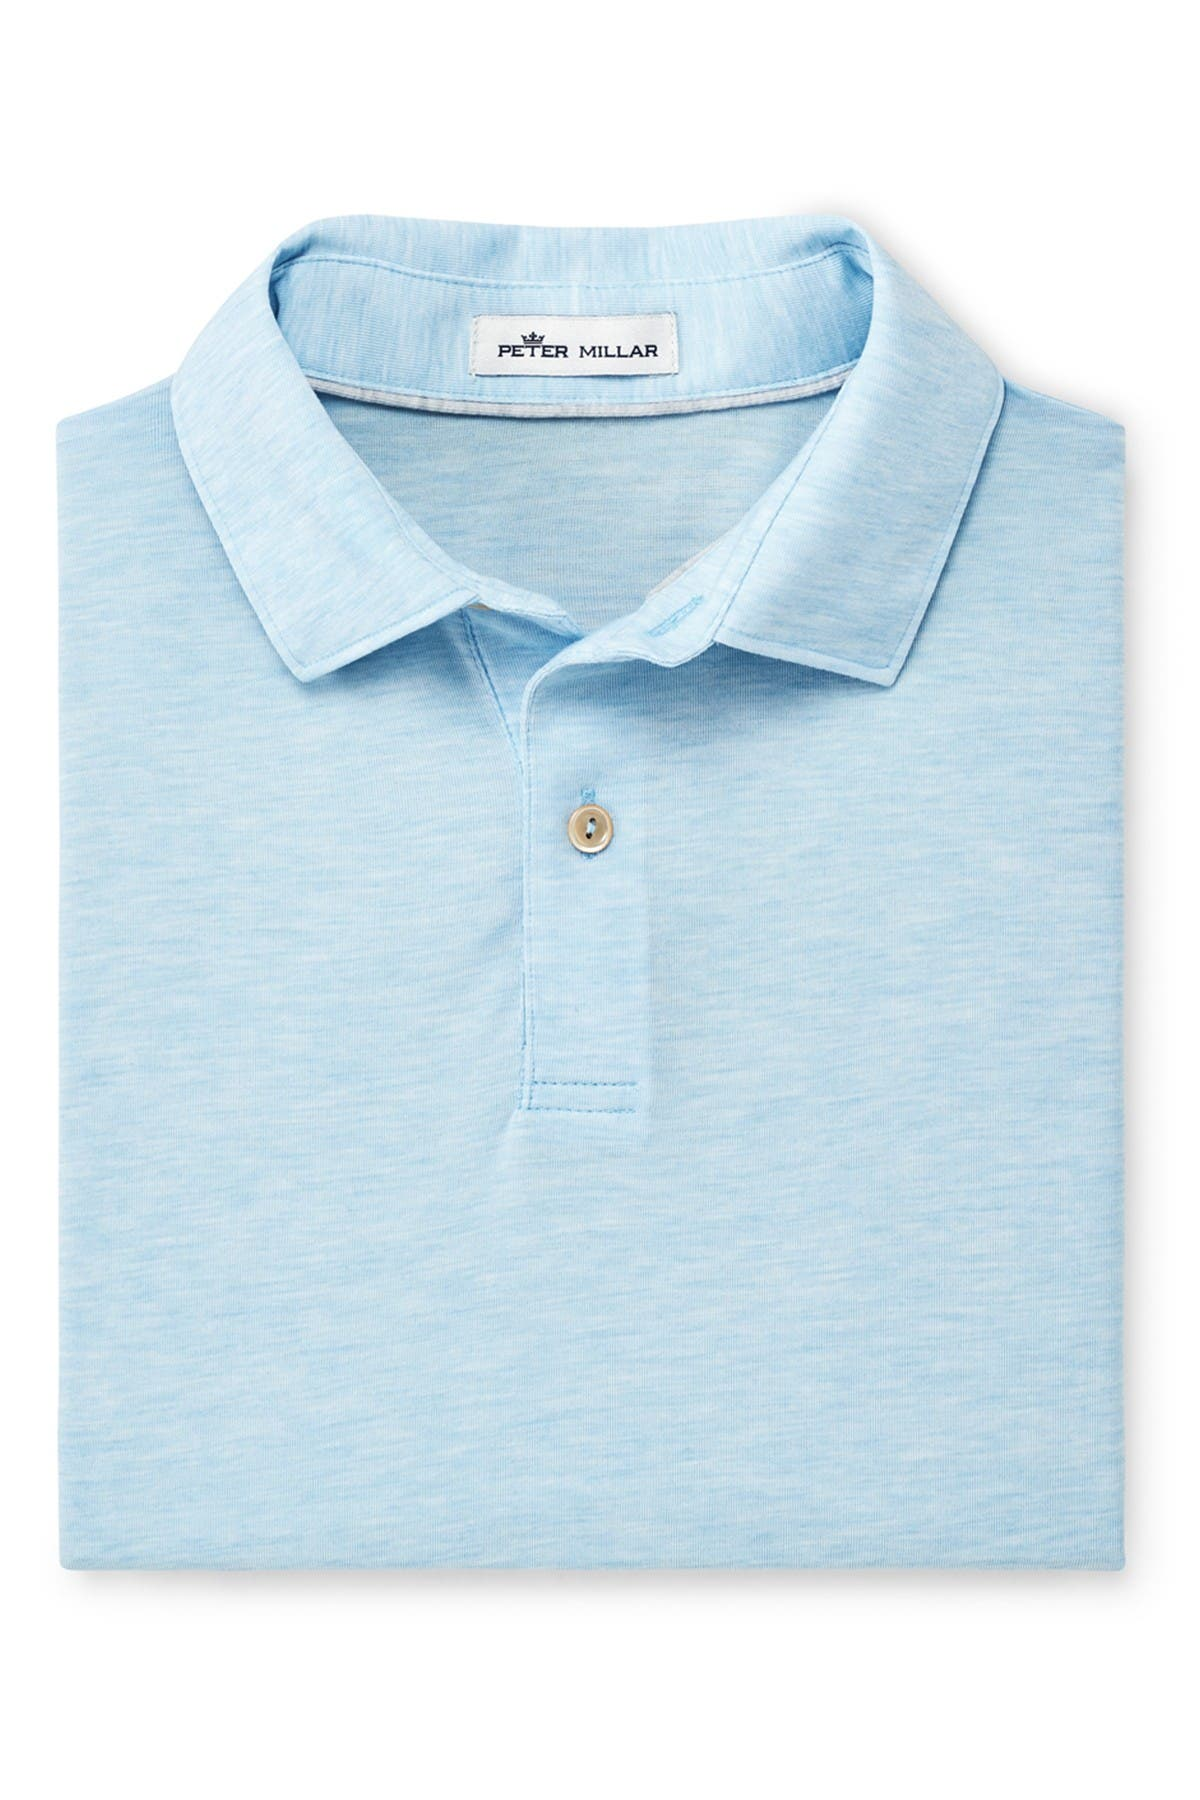 Image of Peter Millar Dri- Release Knit Polo